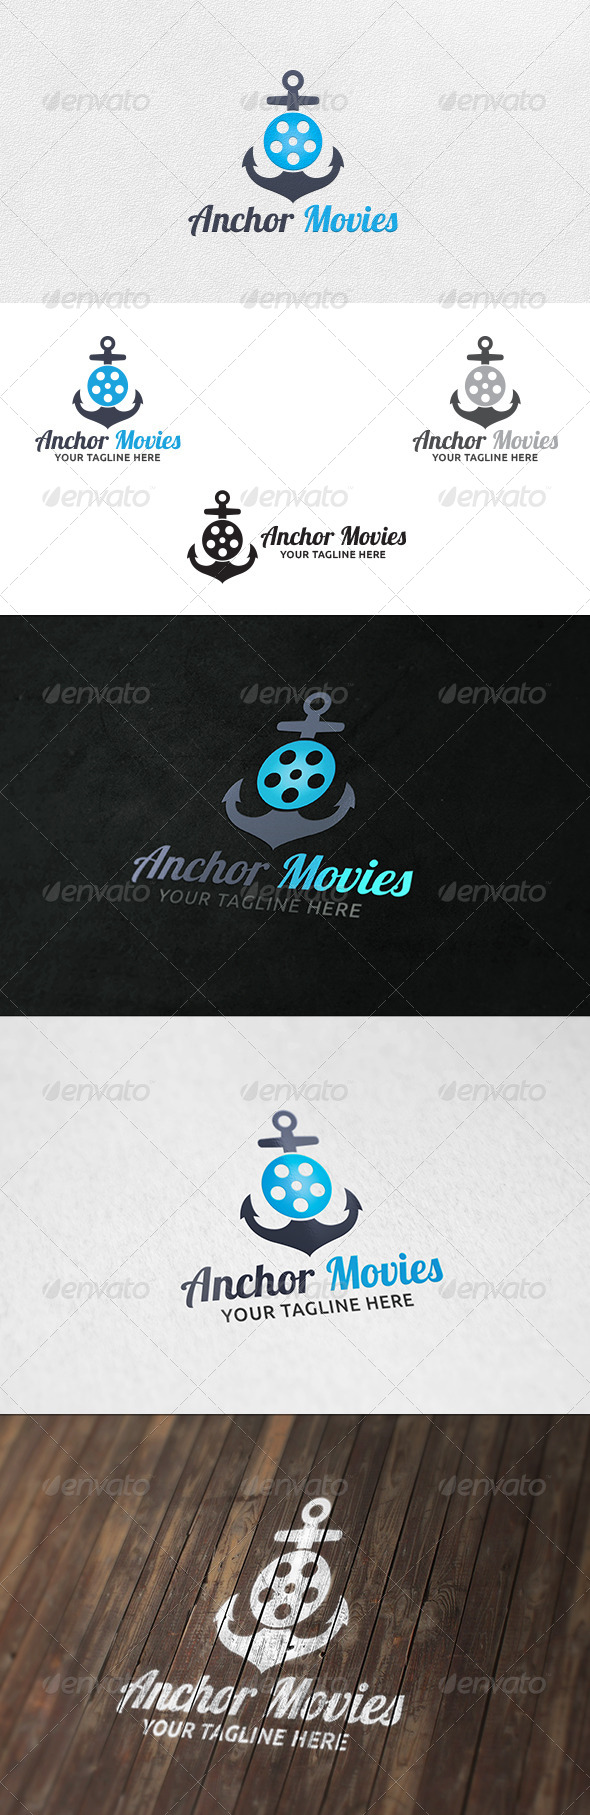 GraphicRiver Anchor Movies Logo Template 6317065